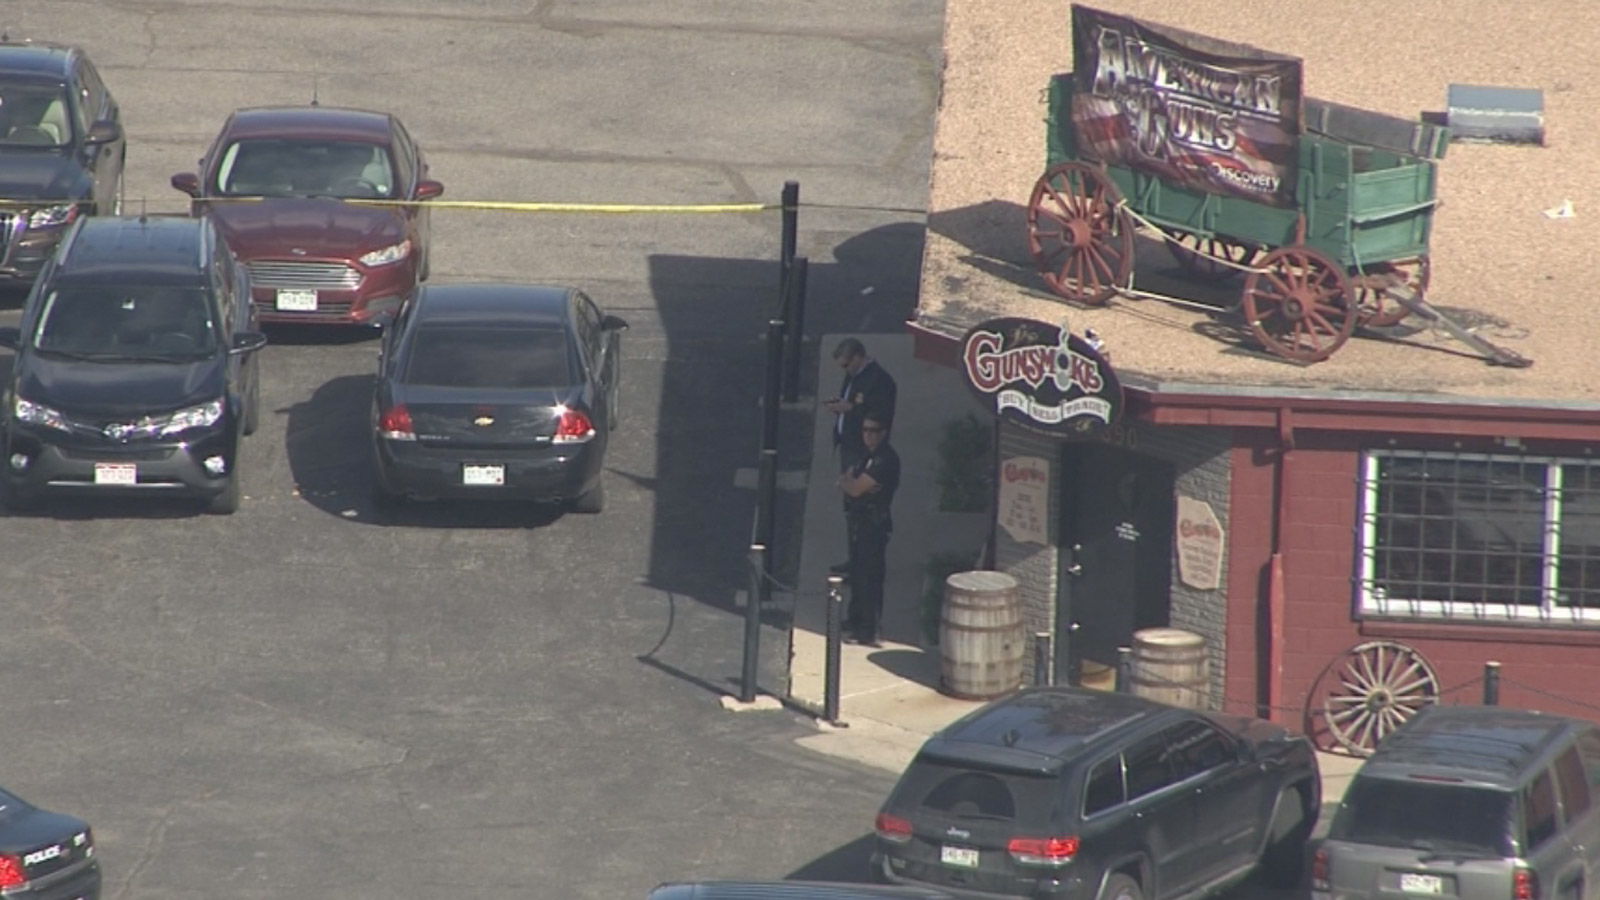 Copter4 flew over the Gunsmoke gunshop in Wheatridge where the ATF was conducting a search on Tuesday (credit: CBS)